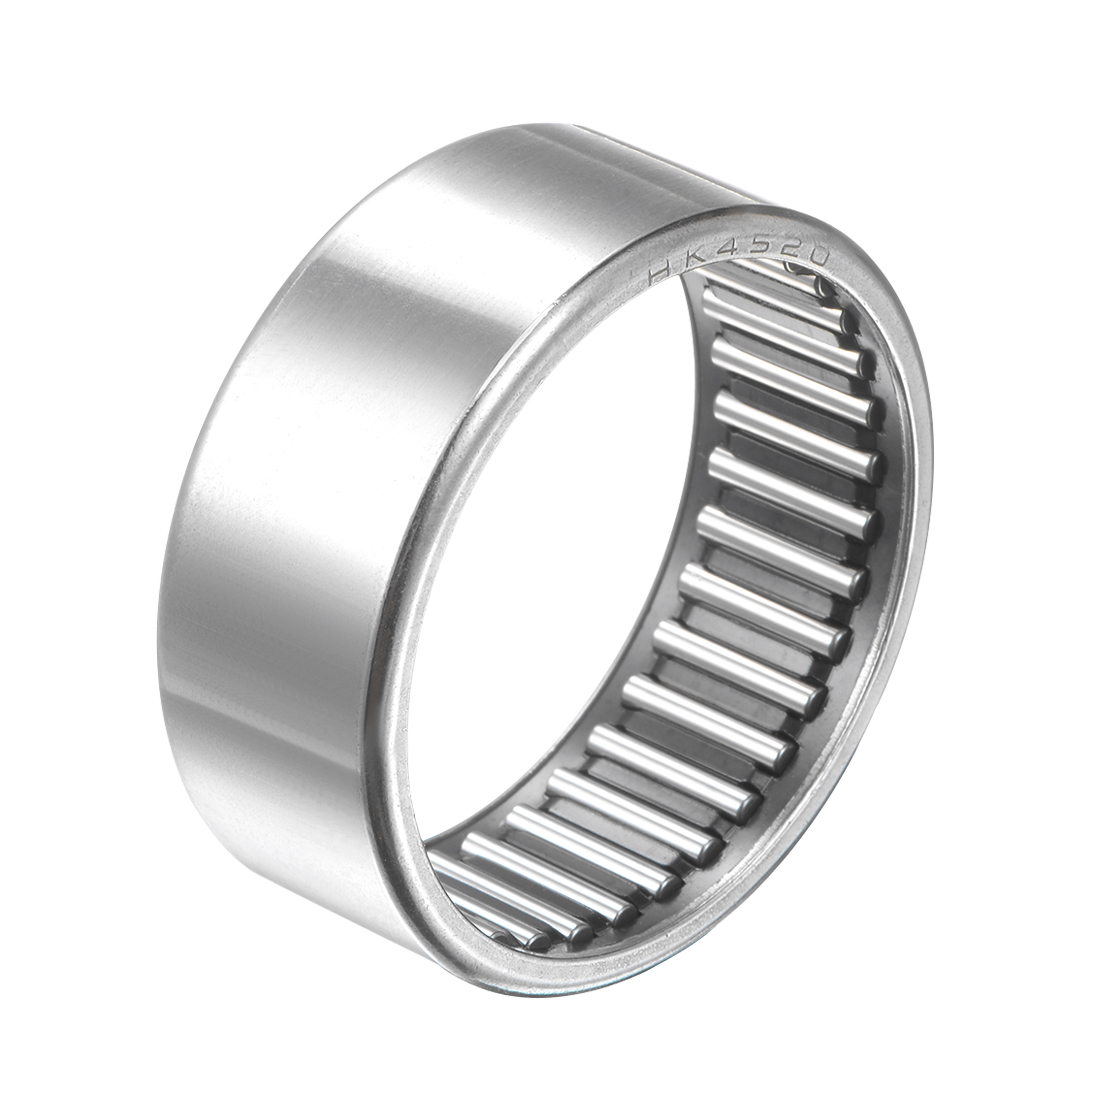 HK4520 Drawn Cup Needle Roller Bearings 45mm Bore, 52mm OD, 20mm Width